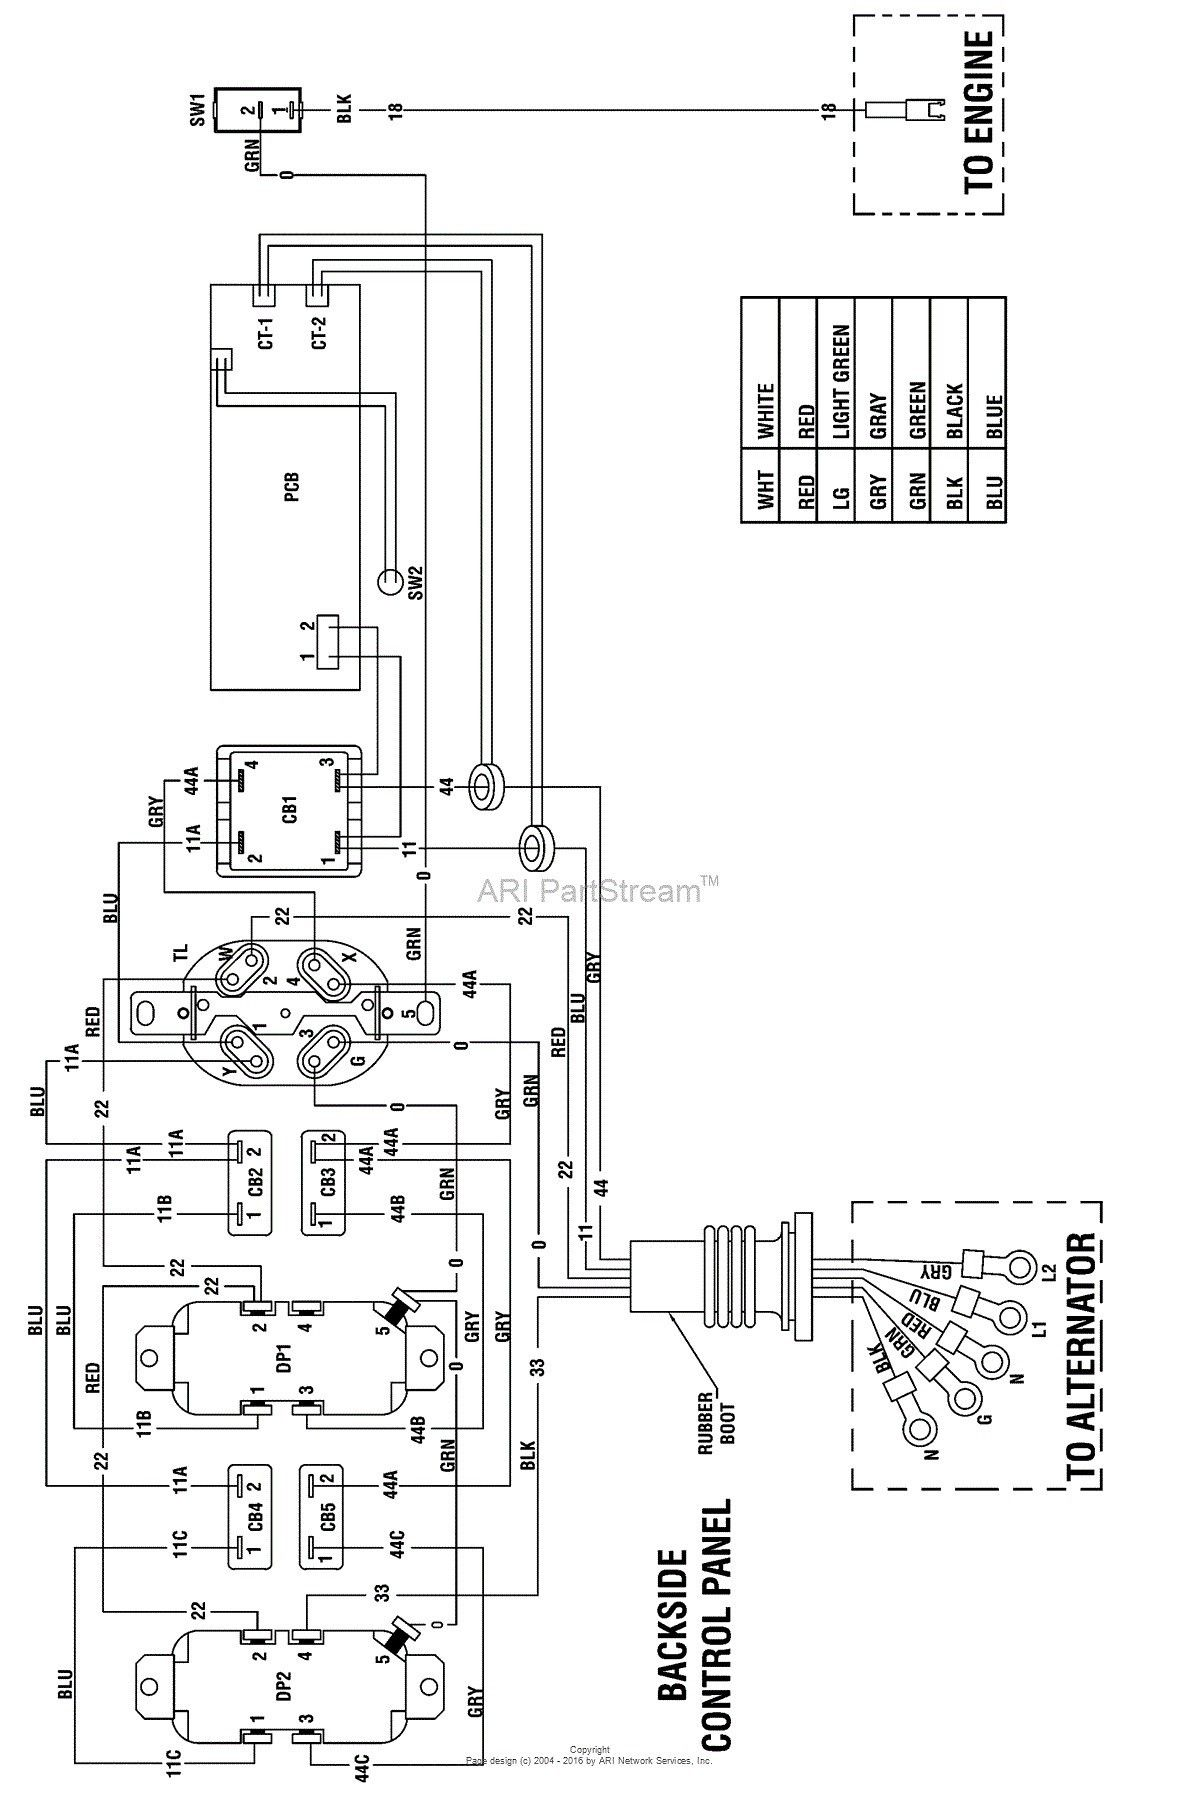 Briggs And Stratton V Twin Wiring Diagram In 2020 Stratton Diagram Electrical Diagram